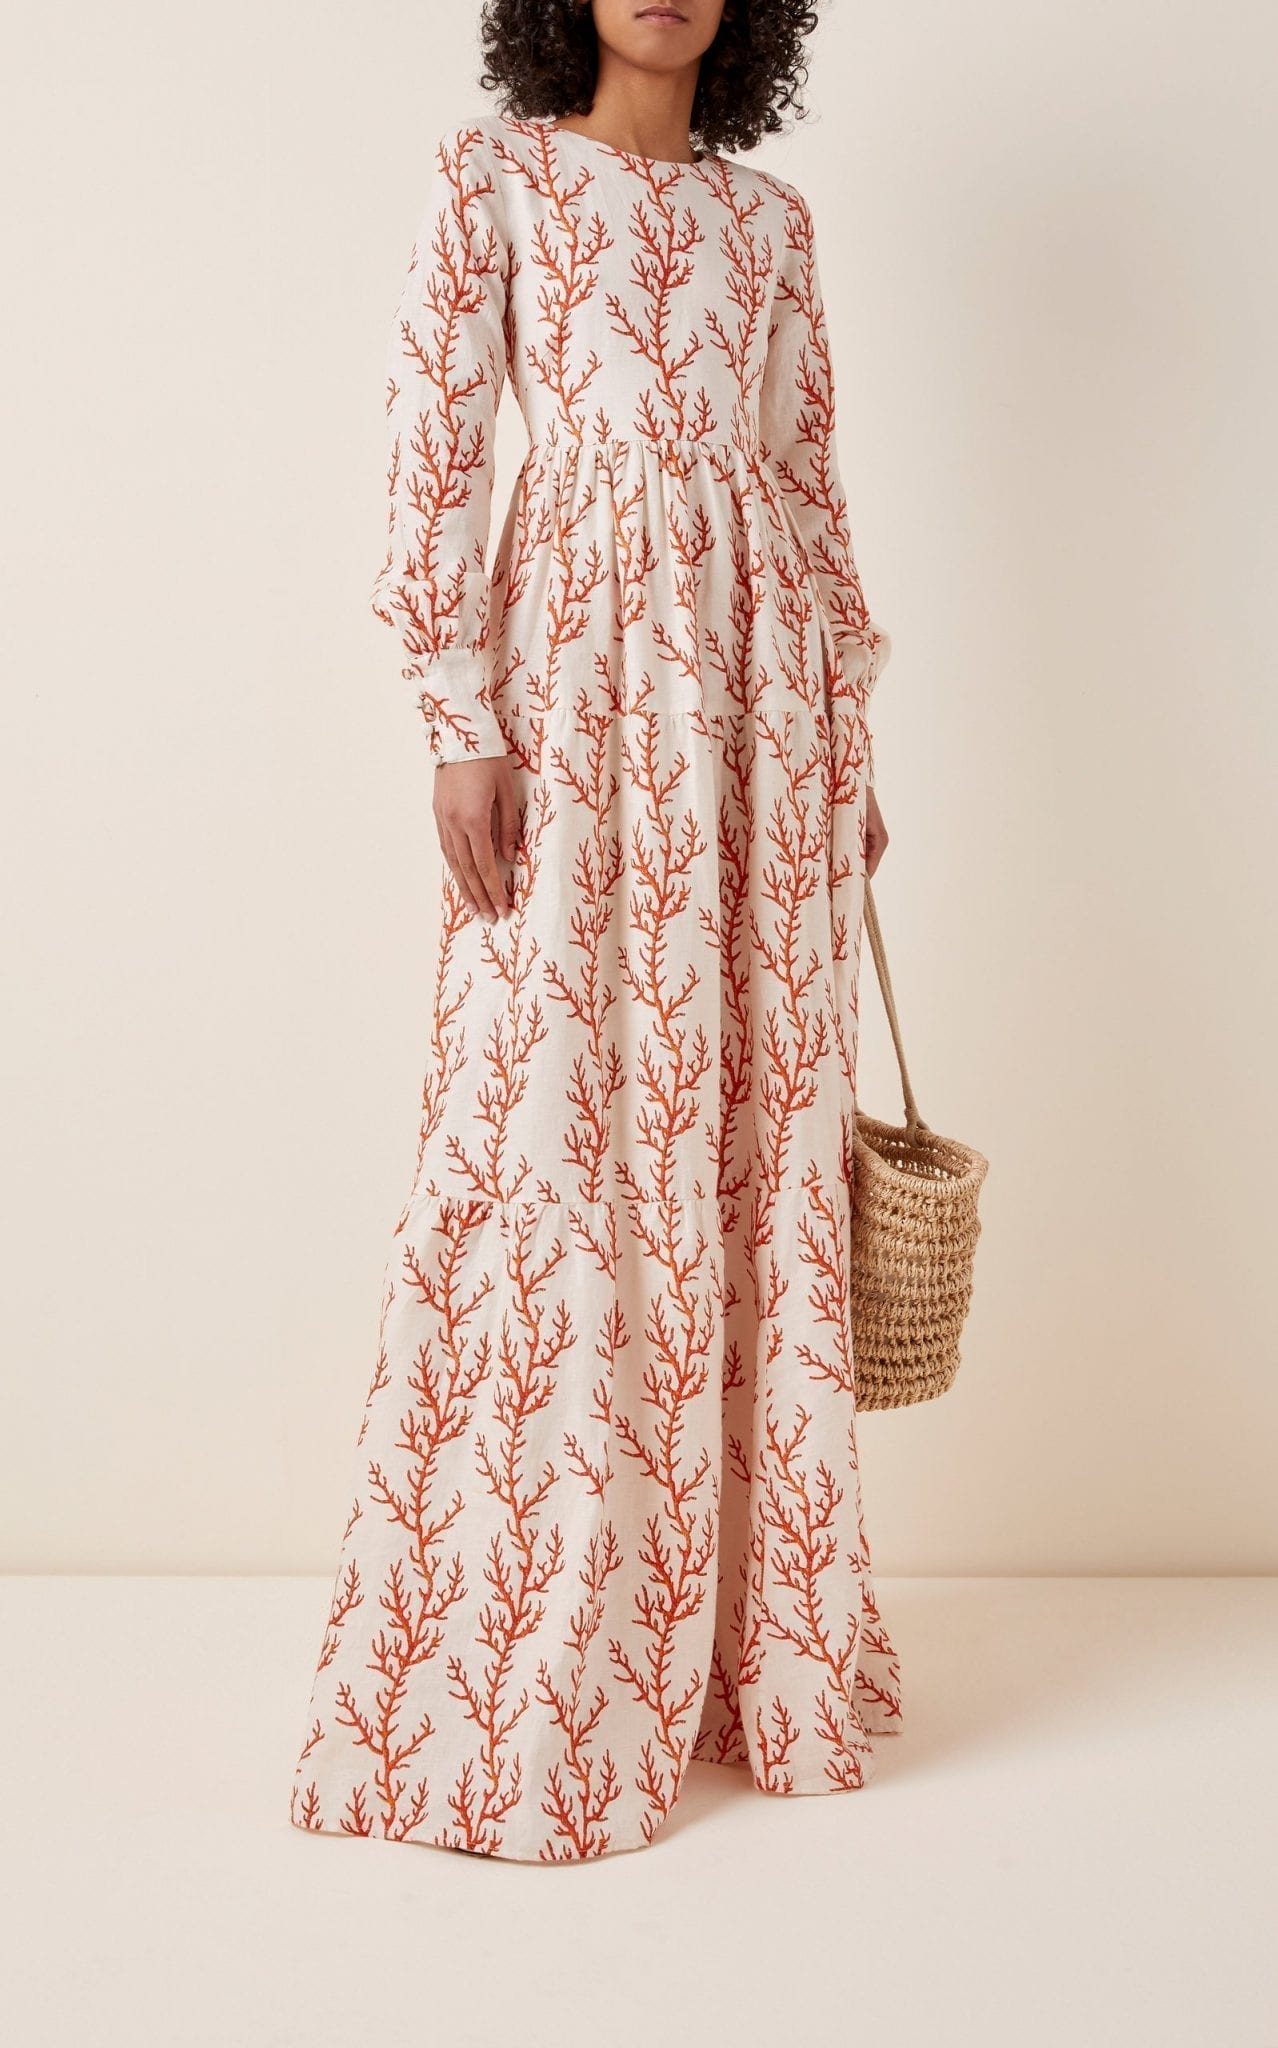 AGUA BY AGUA BENDITA Nuez Arrecife Printed Linen Maxi Dress